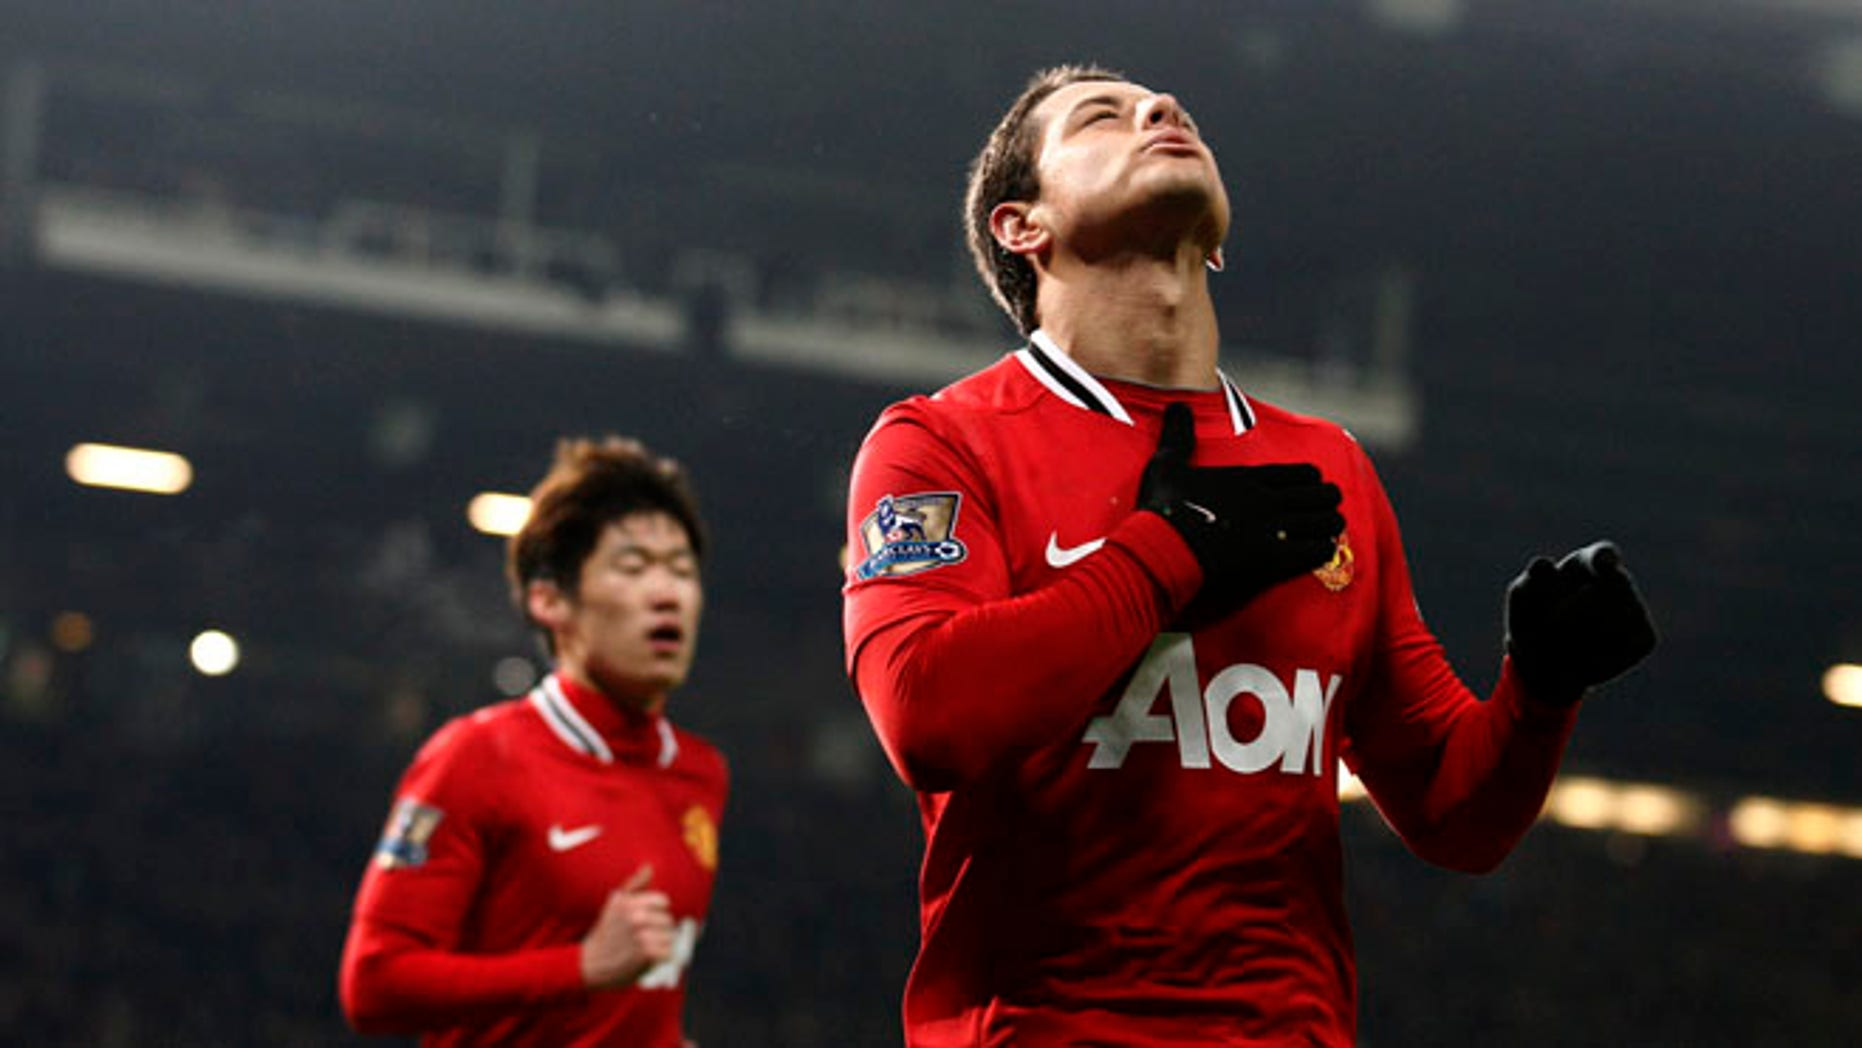 Manchester United's Javier Hernandez celebrates after scoring against Stoke, Jan. 31, 2012. (AP Photo/Jon Super)